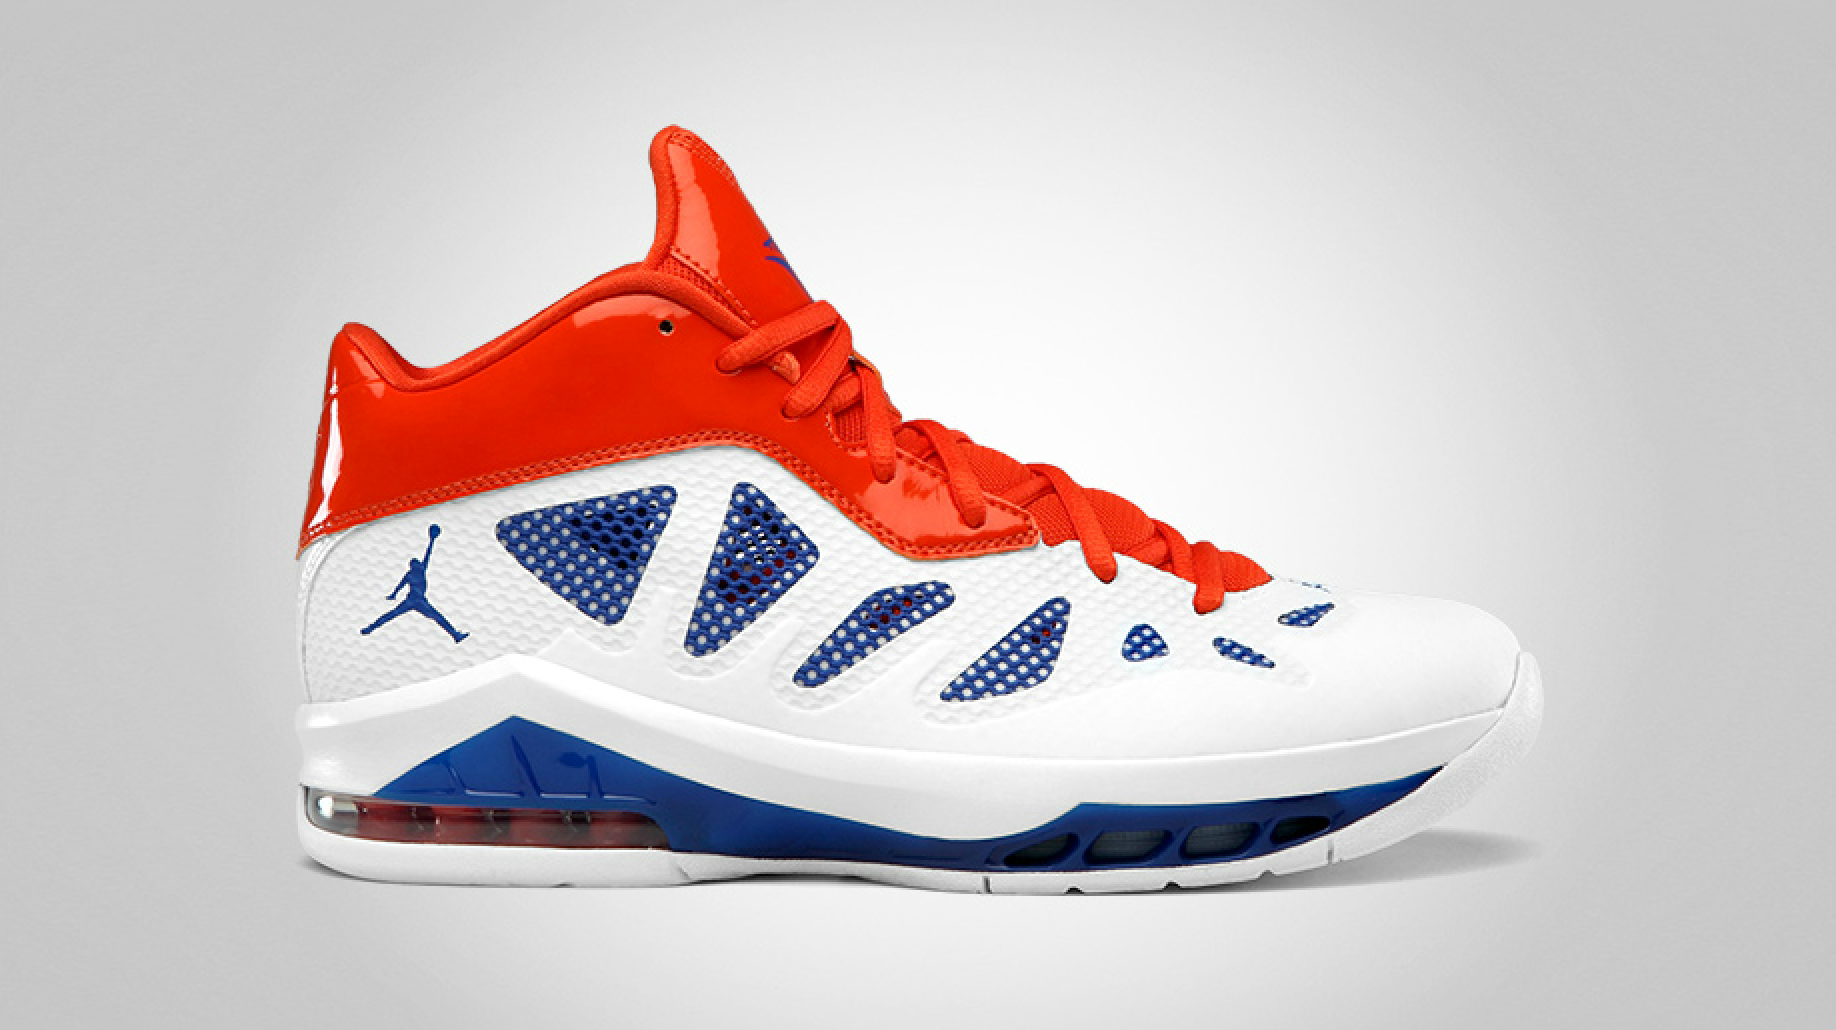 new arrival b16b3 7881e Jordan Melo M8 Advance  Home  - Official Images